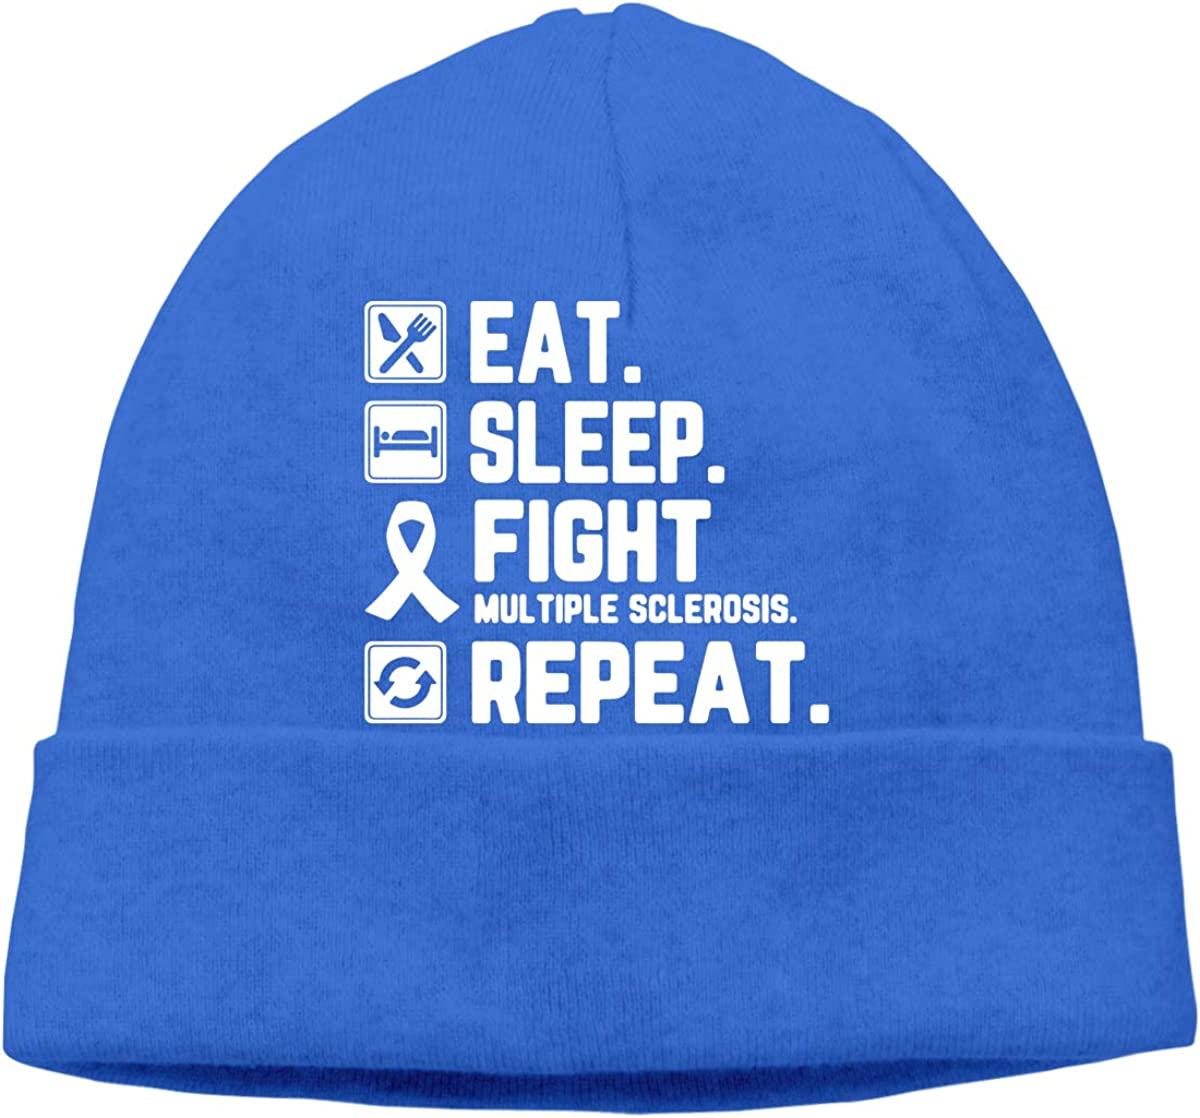 COLLJL8 Men//Women Eat Sleep Fight Multiple Sclerosis Awareness Repeat Outdoor Fashion Beanies Hat Soft Winter Knit Caps